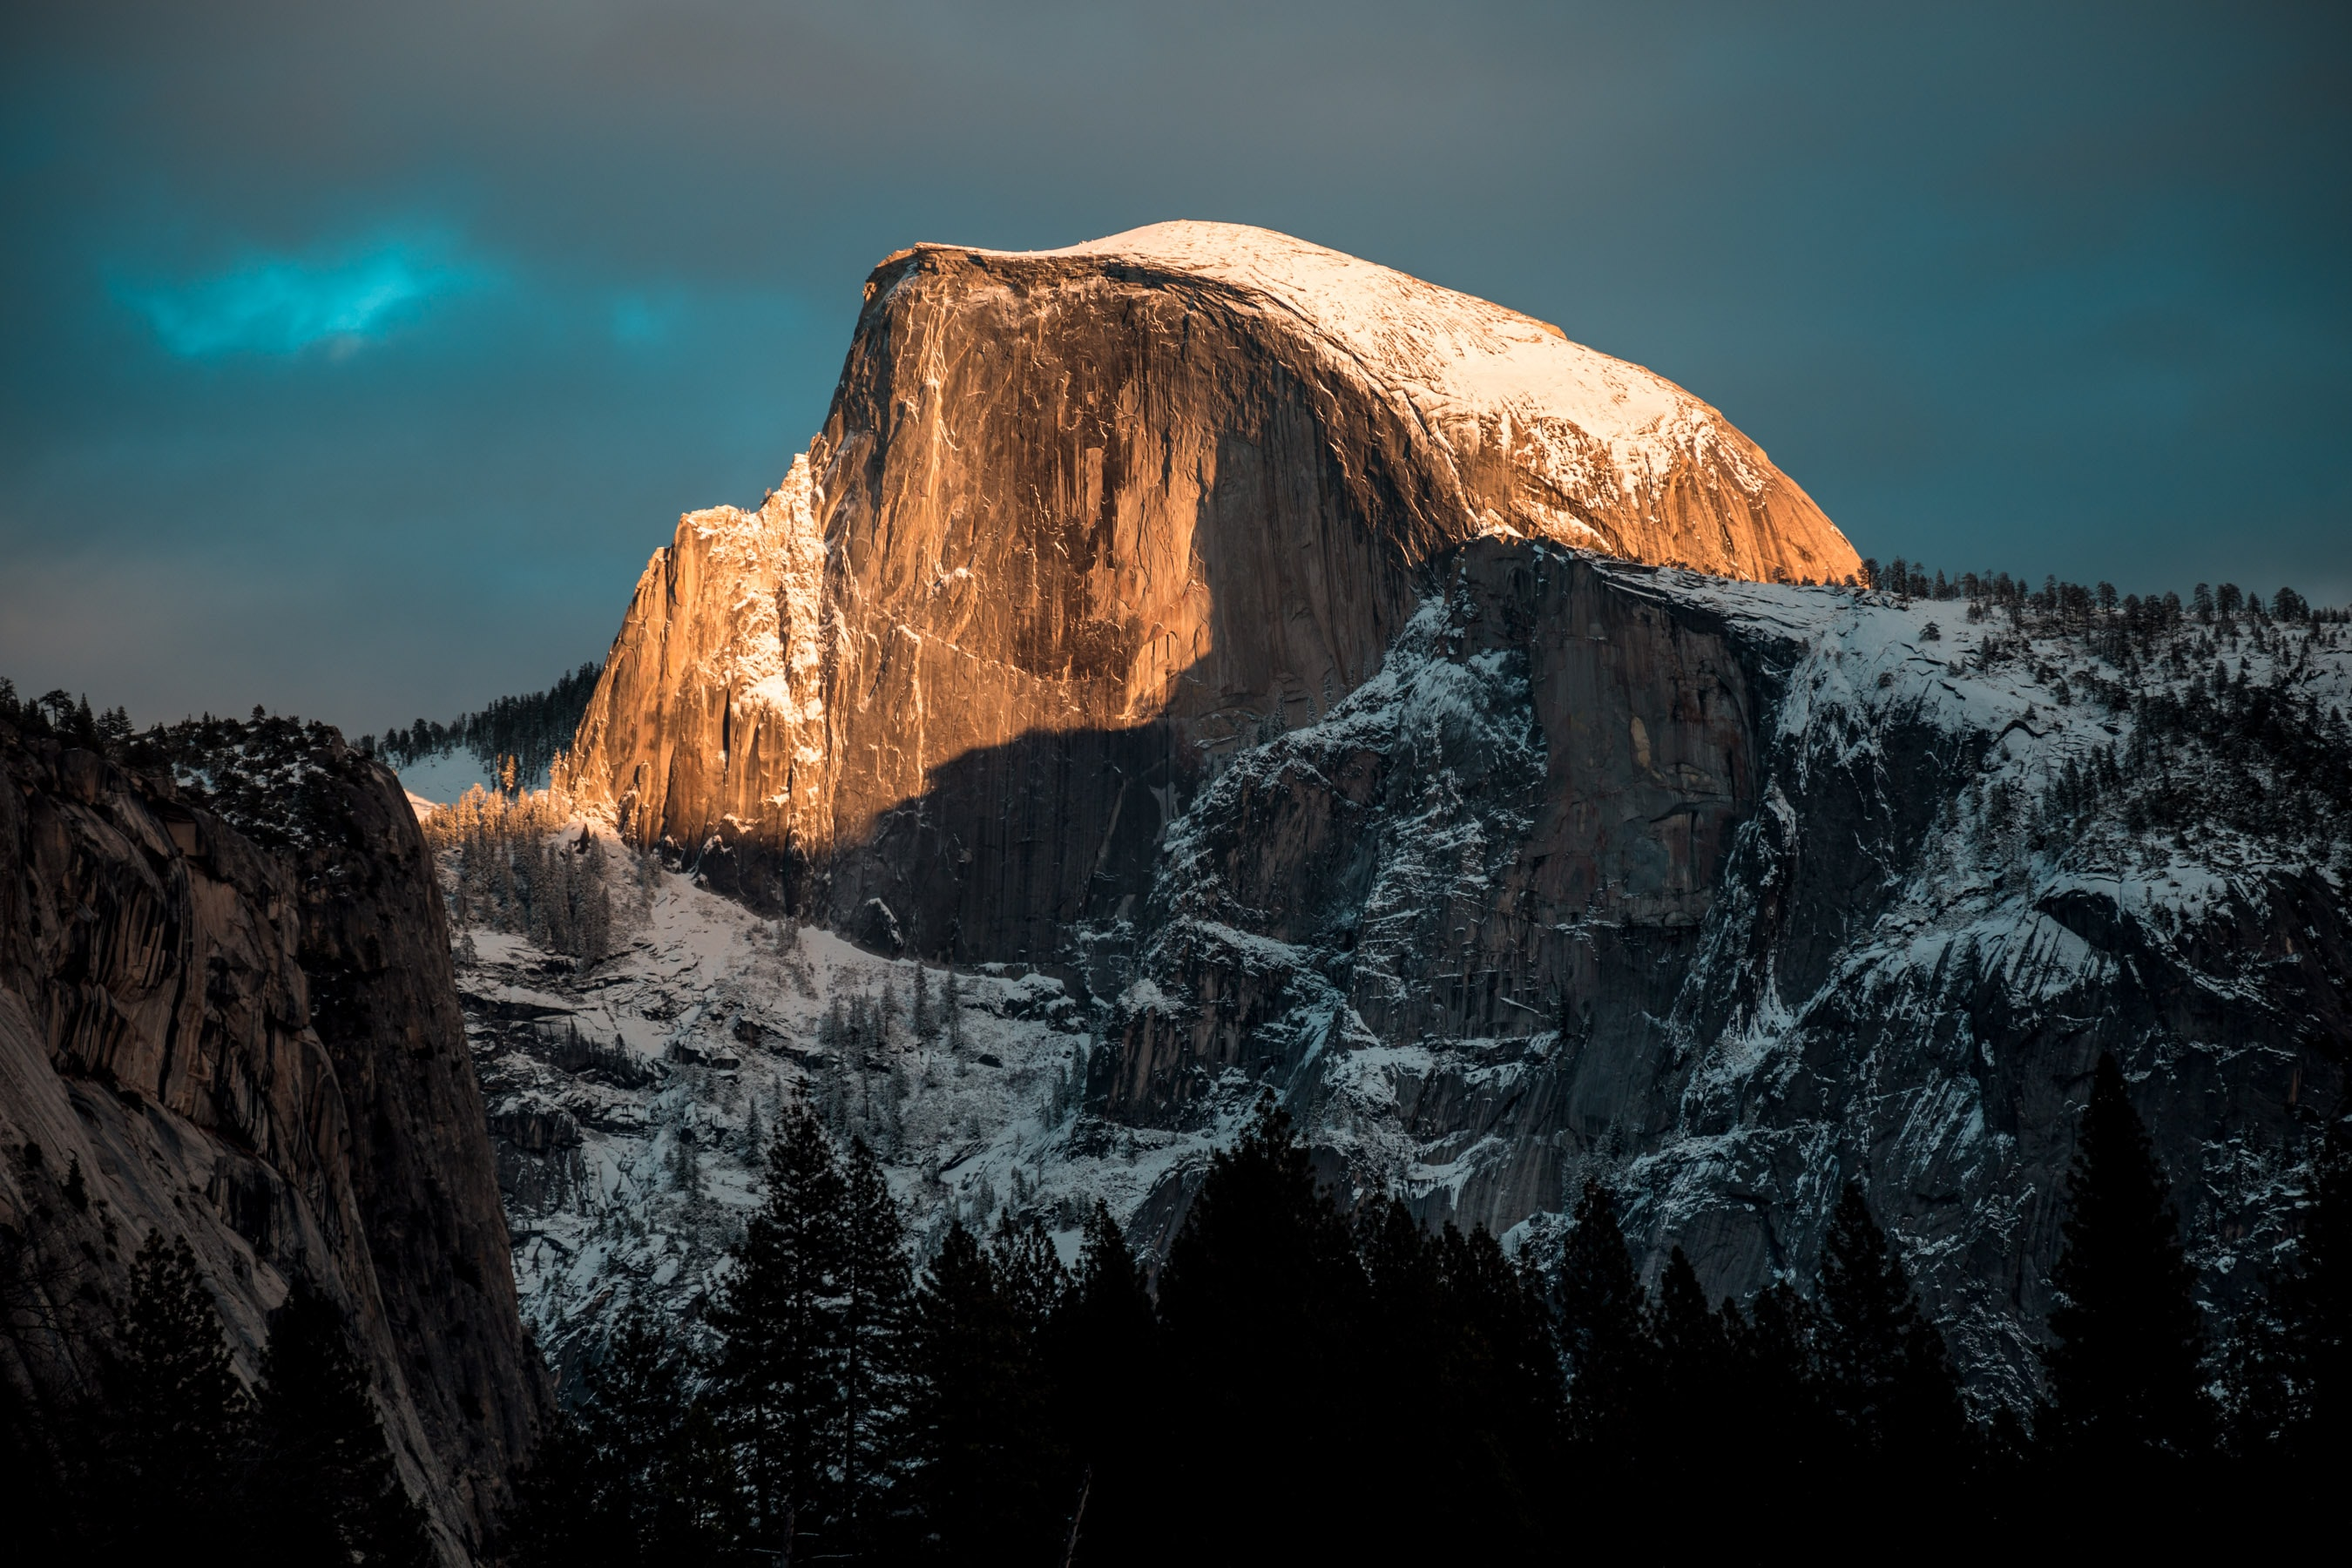 The sun lighting up a snowcapped Half Dome peak at California's Yosemite National Park